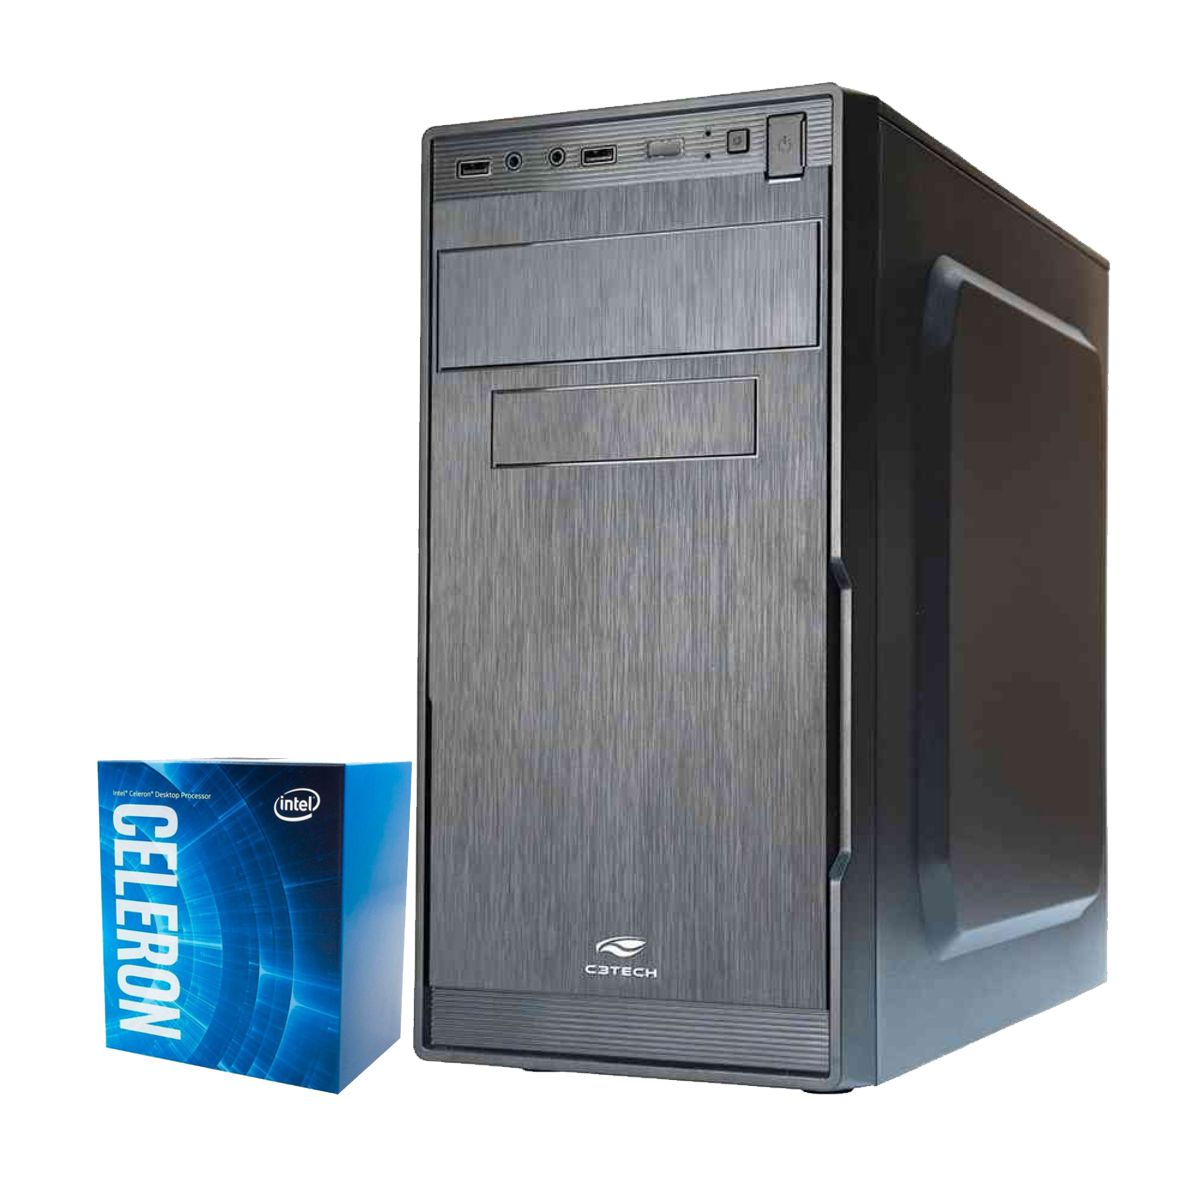 Computador Kit Work/home Intel Celeron G4930 4gb Ddr4 Hd 320gb